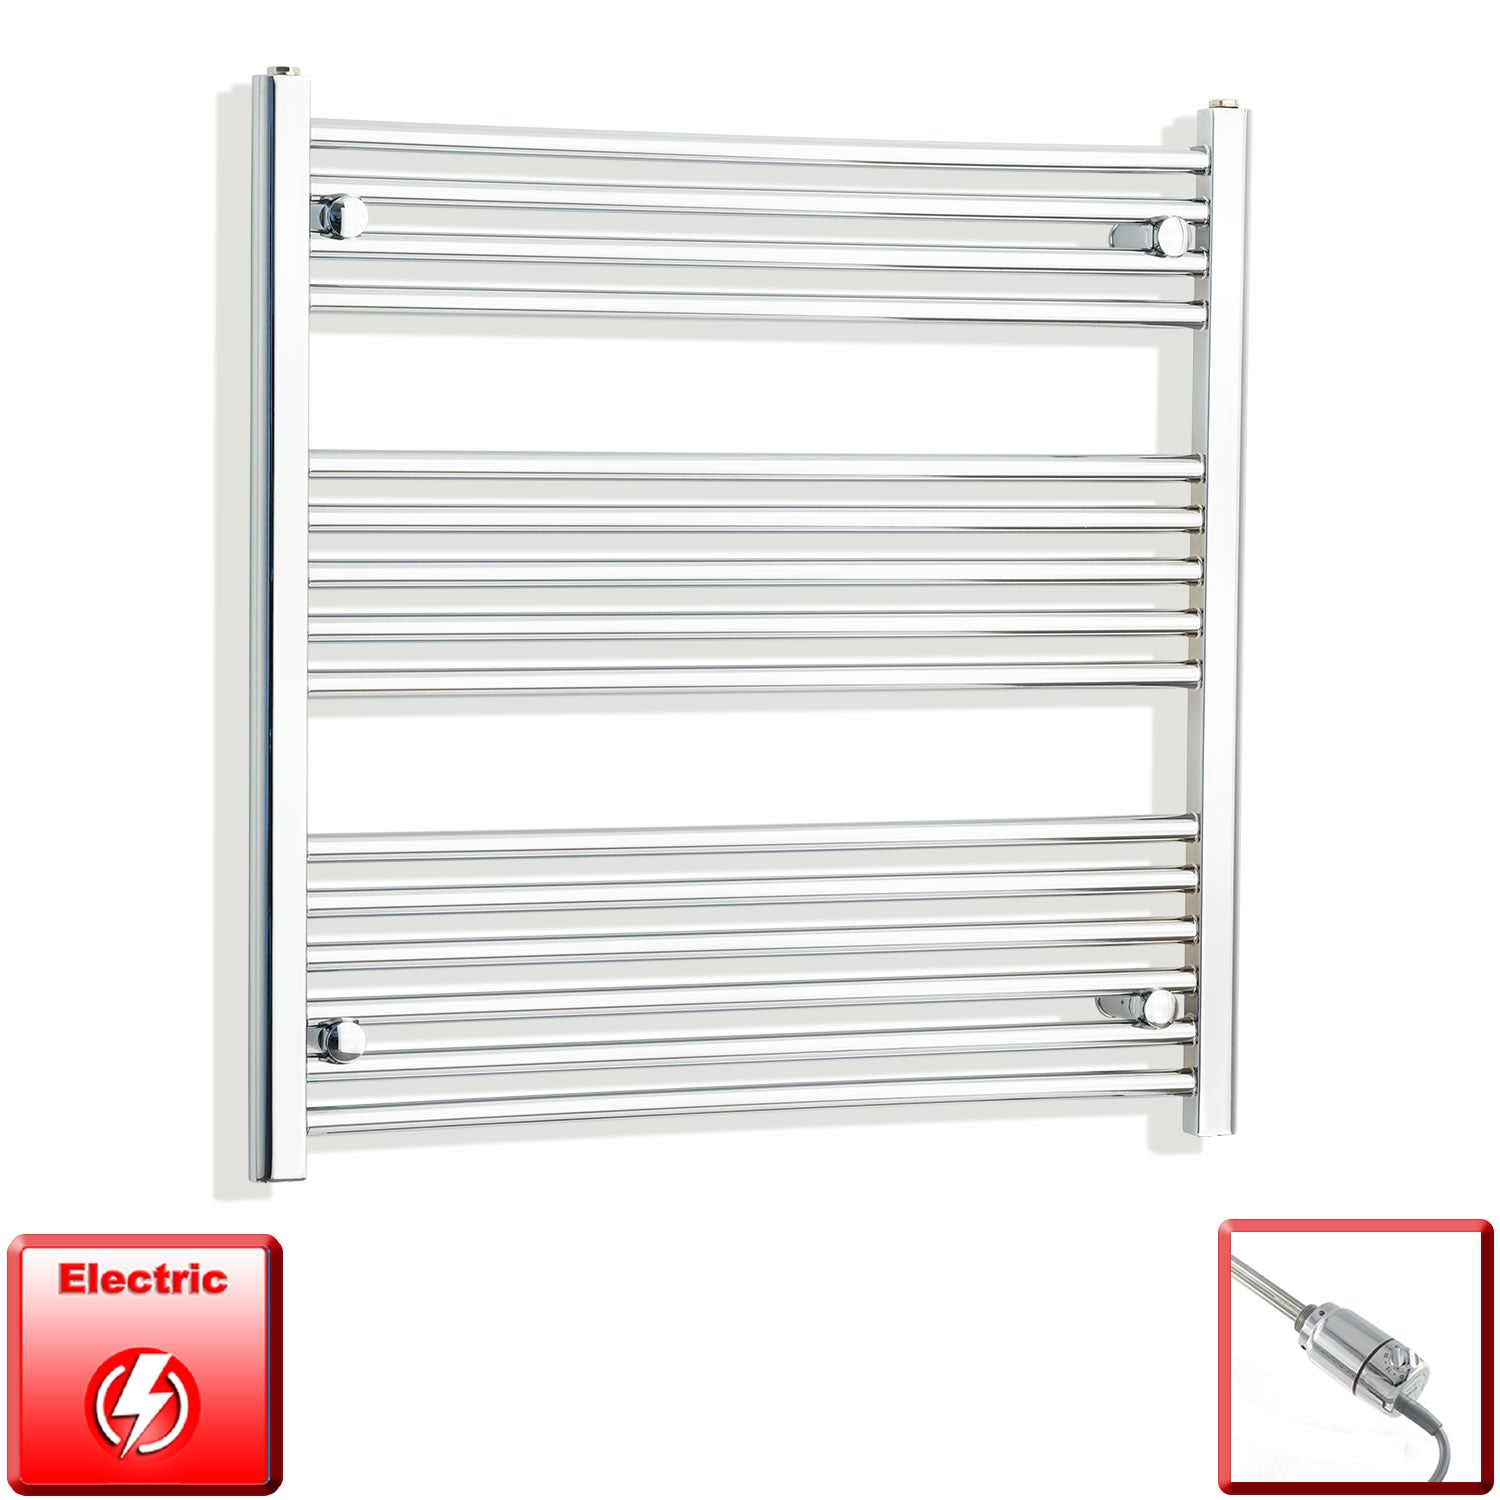 900mm Wide 800mm High Pre-Filled Chrome Electric Towel Rail Radiator With Thermostatic GT Element